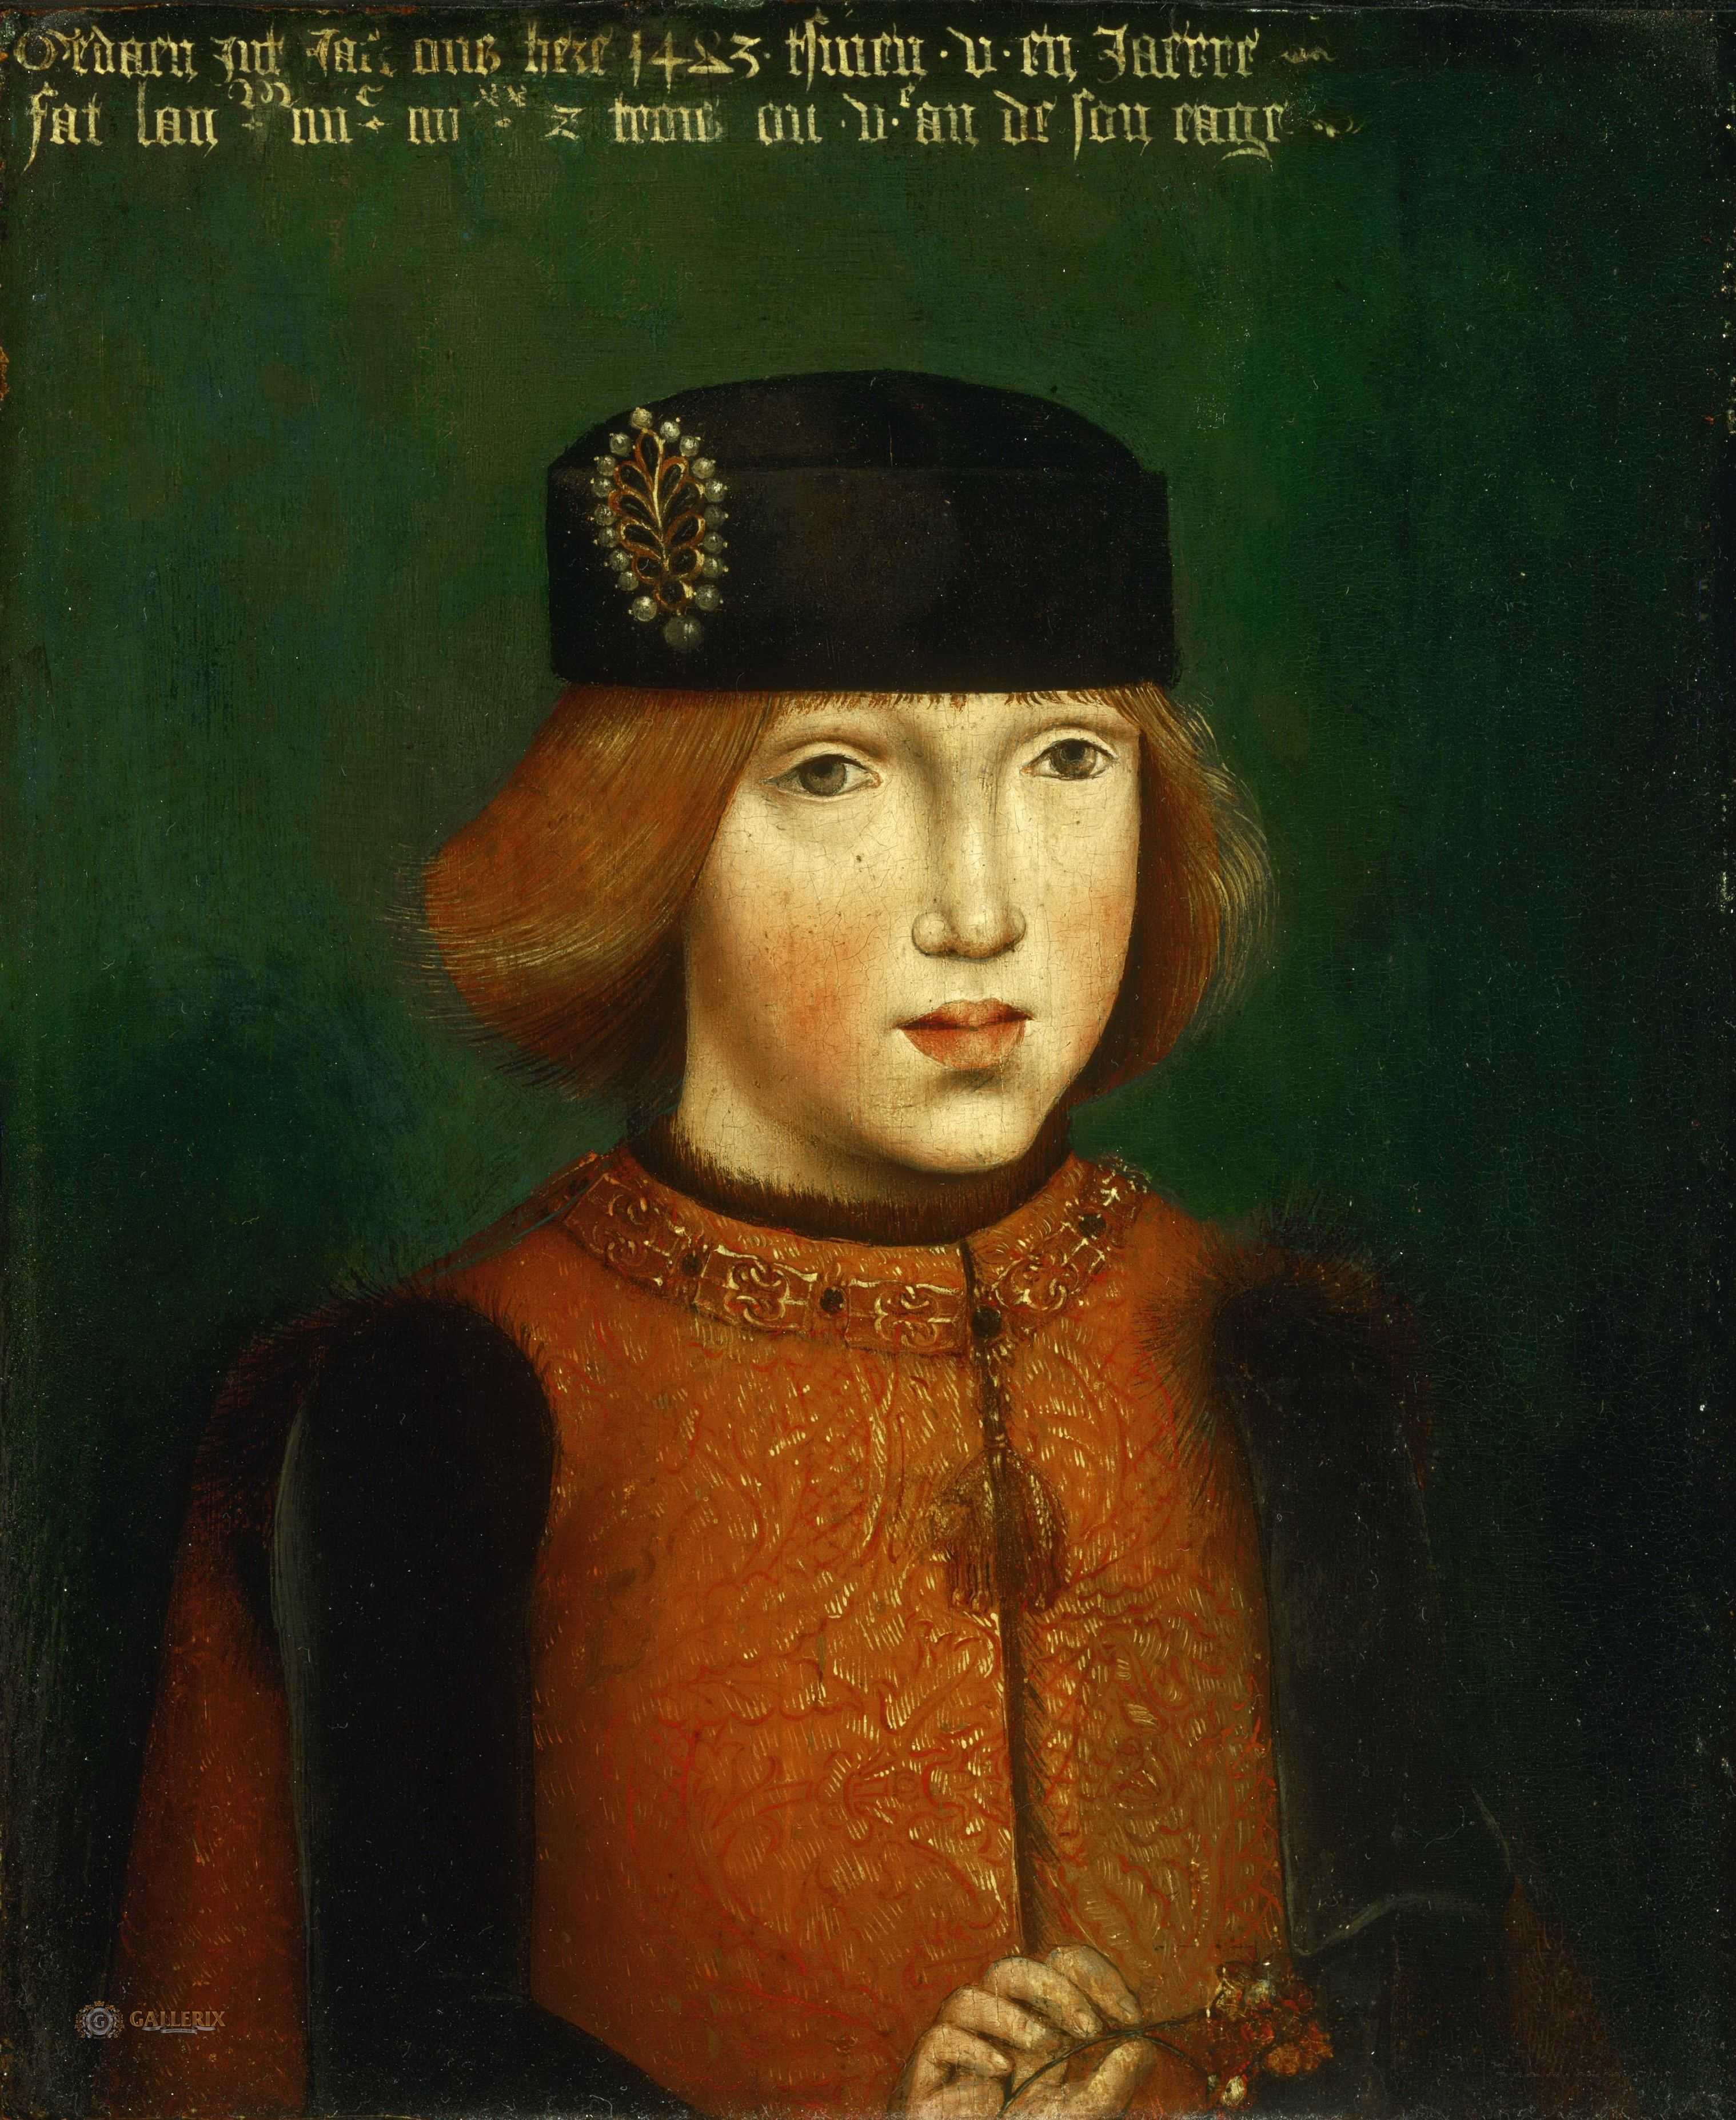 Attributed to the Master of the Magdalene Legend, Netherlandish (active Brussels), active c. 1480-c. 1520 -- Portrait of Philip the Fair